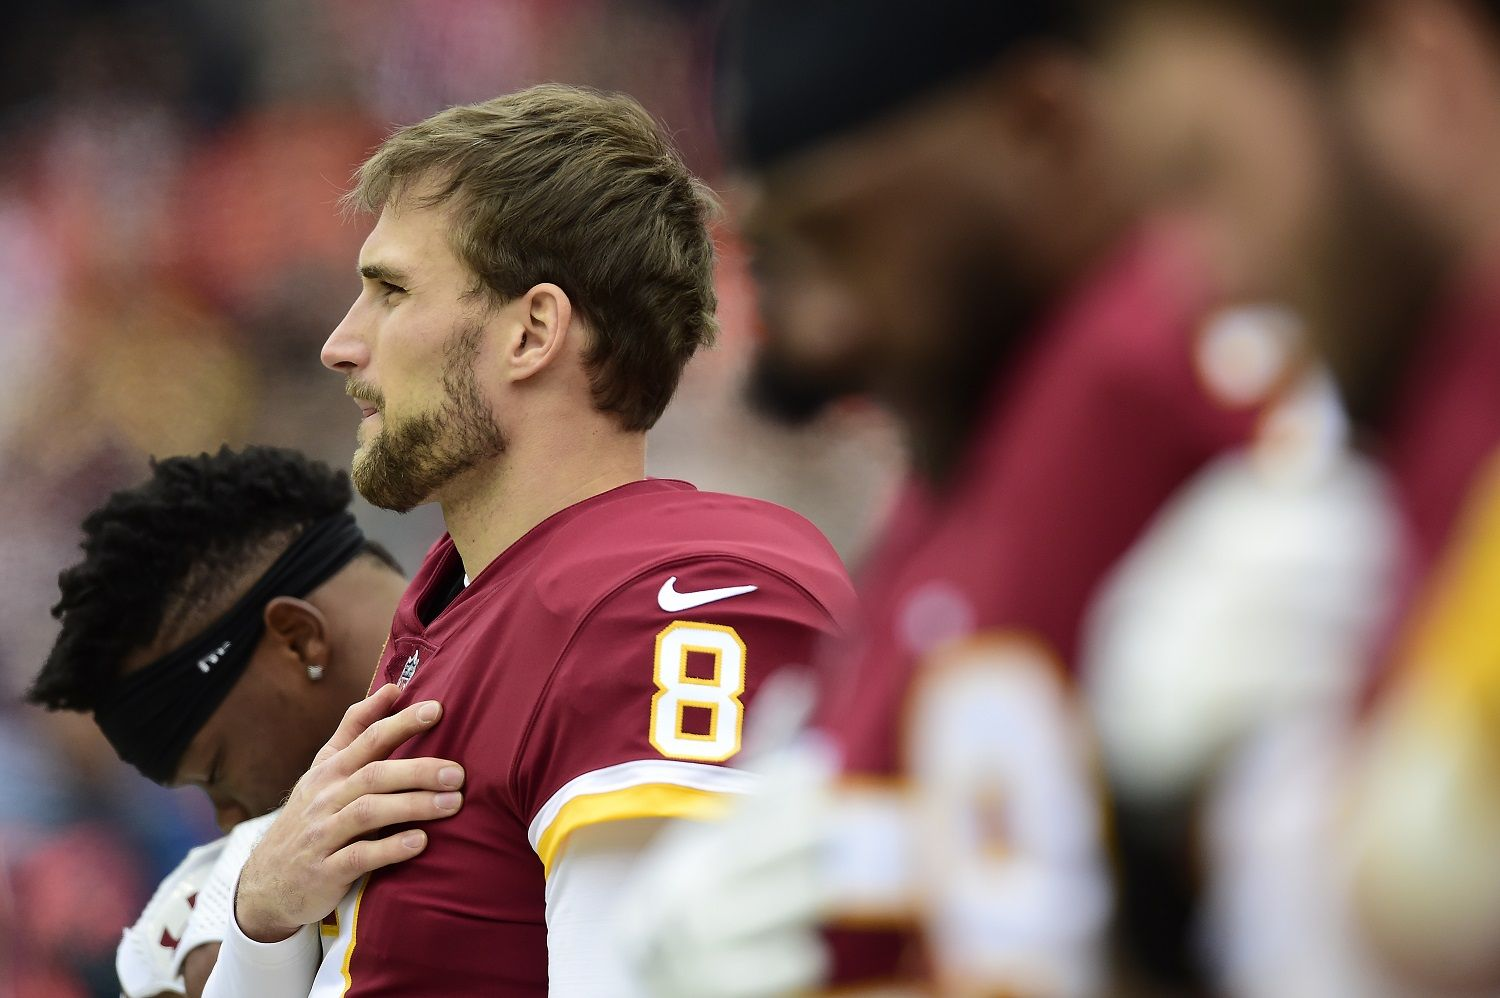 LANDOVER, MD - DECEMBER 24: Quarterback Kirk Cousins #8 of the Washington Redskins listens to the National Anthem before a game against the Denver Broncos at FedExField on December 24, 2017 in Landover, Maryland. (Photo by Patrick McDermott/Getty Images)